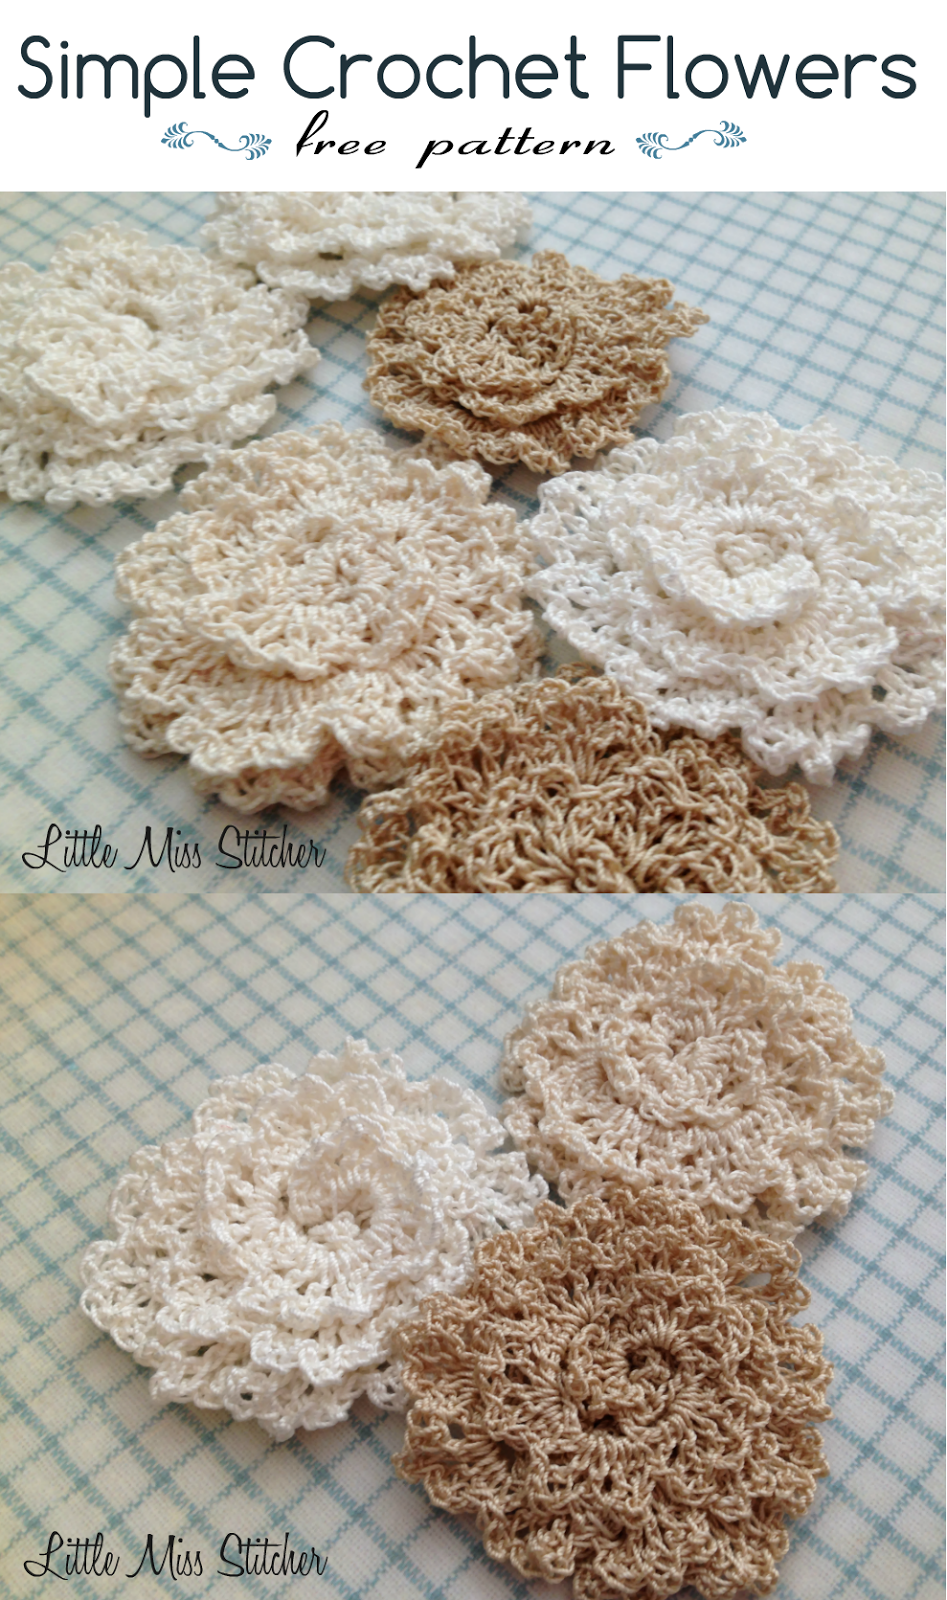 Basic Crochet Flower Patterns Free : Little Miss Stitcher: Simple Crochet Flower Free Pattern